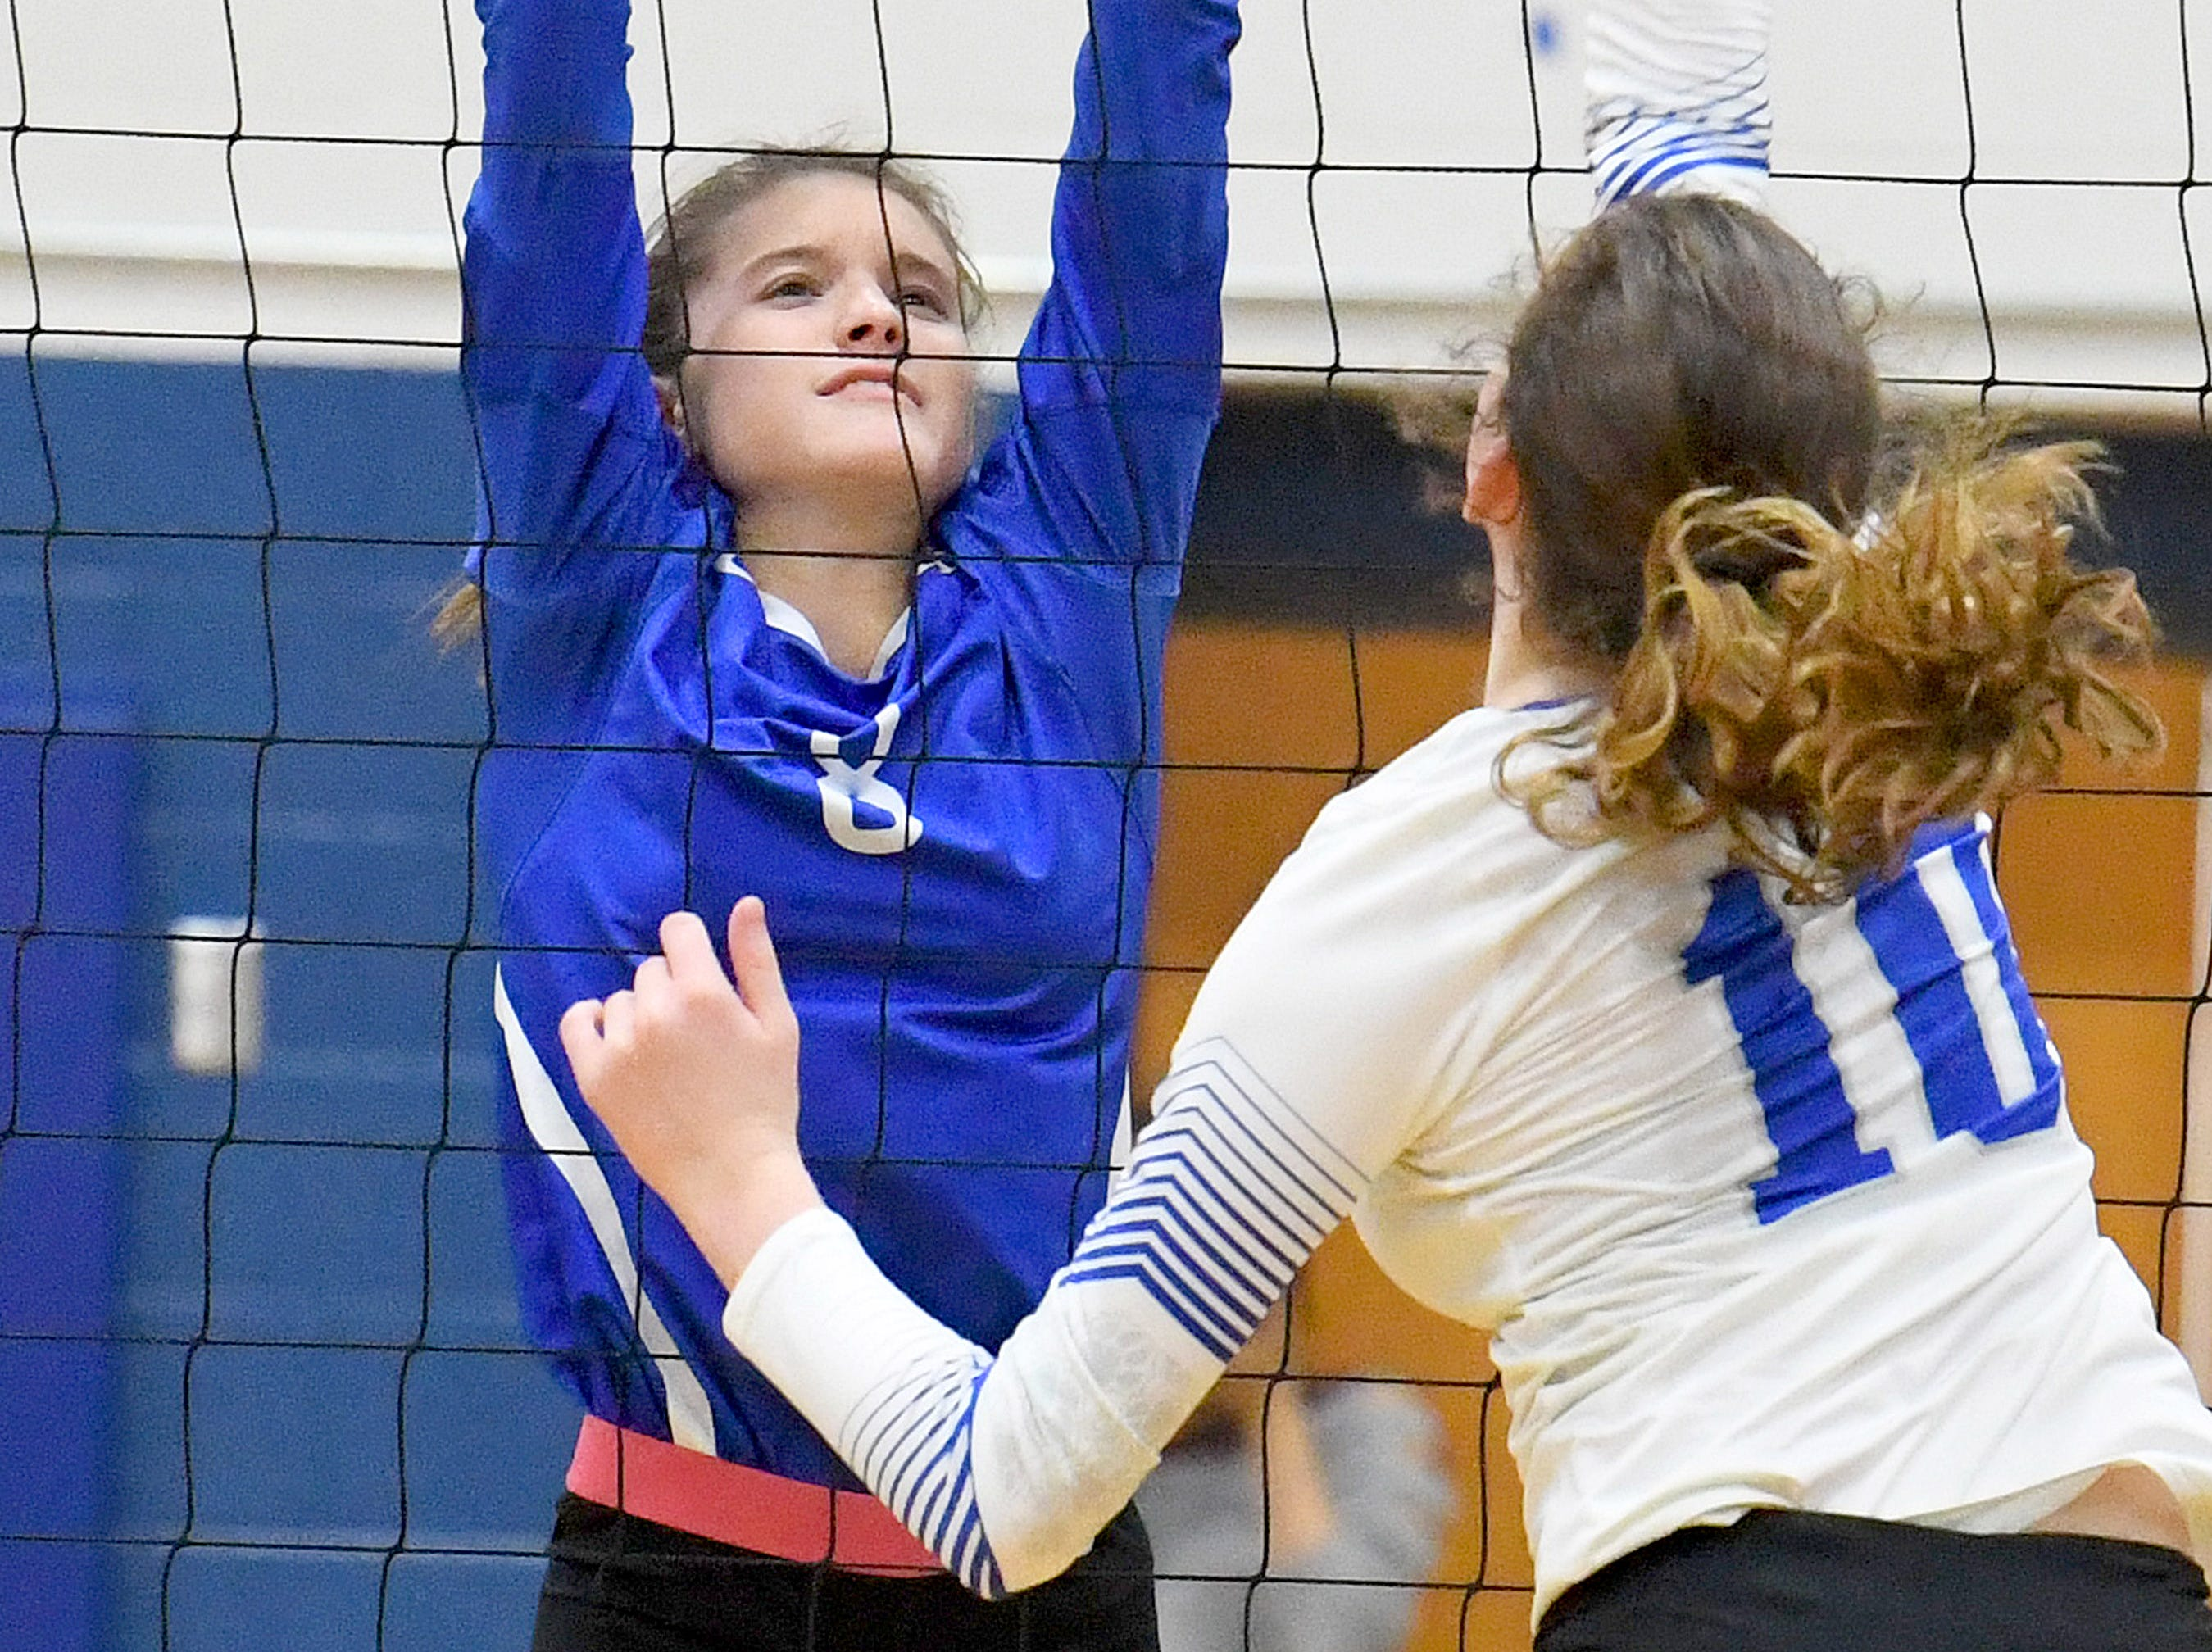 Fort Defiance's Casey Mozingo tries to block a return at the net during a Region 3C semifinal match played in Lexington on Monday, Nov. 5, 2018.